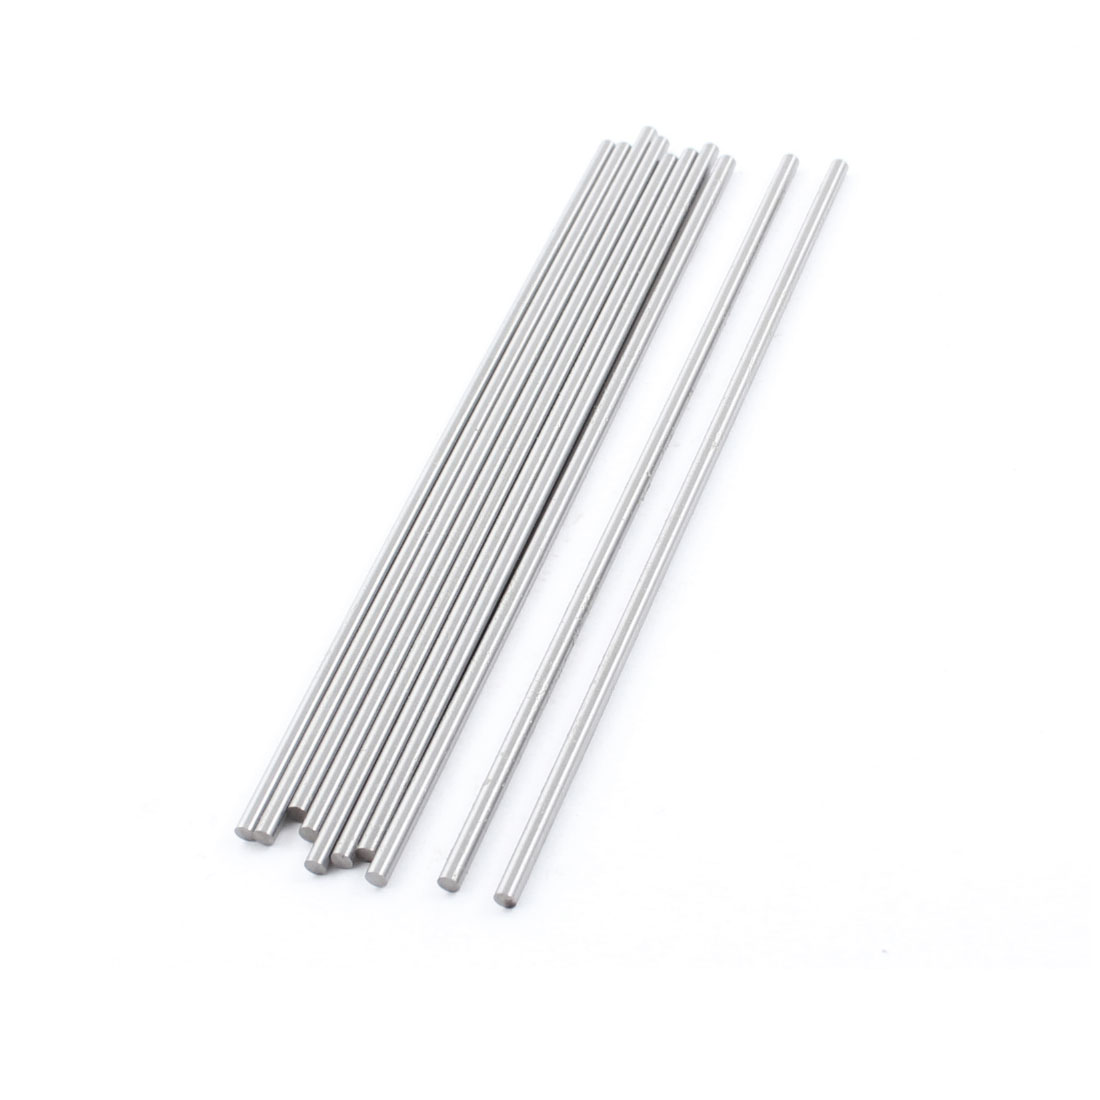 10pcs High Speed Steel Round Turning Lathe Carbide Bars 3mm x 150mm